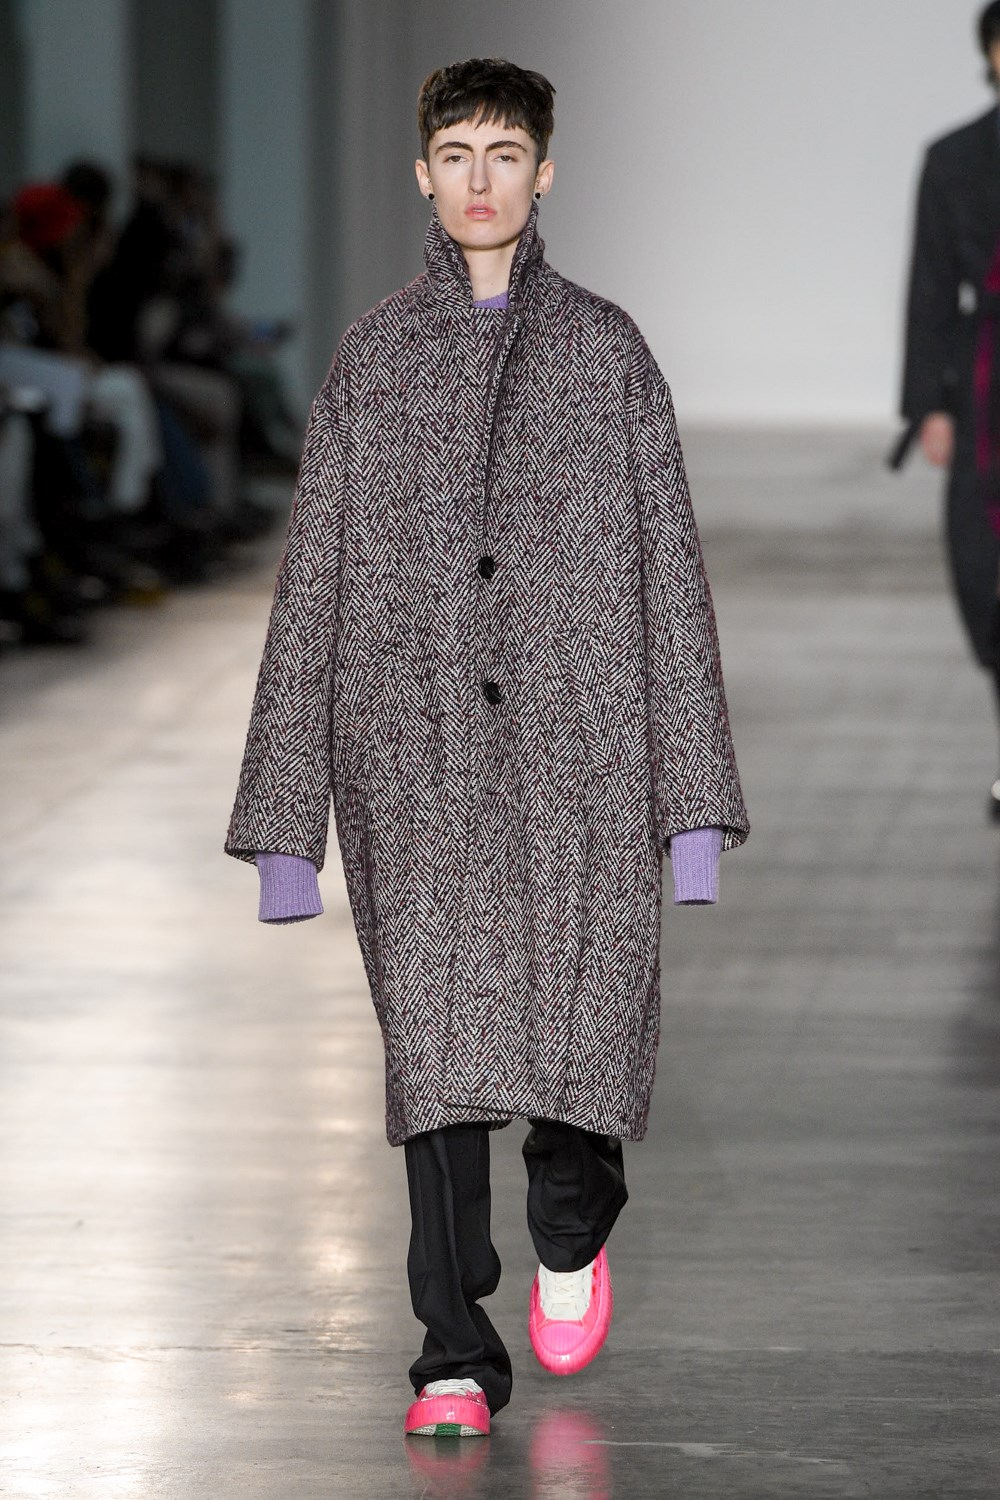 8ON8 - Automne/Hiver 2020 - London Fashion Week Men's